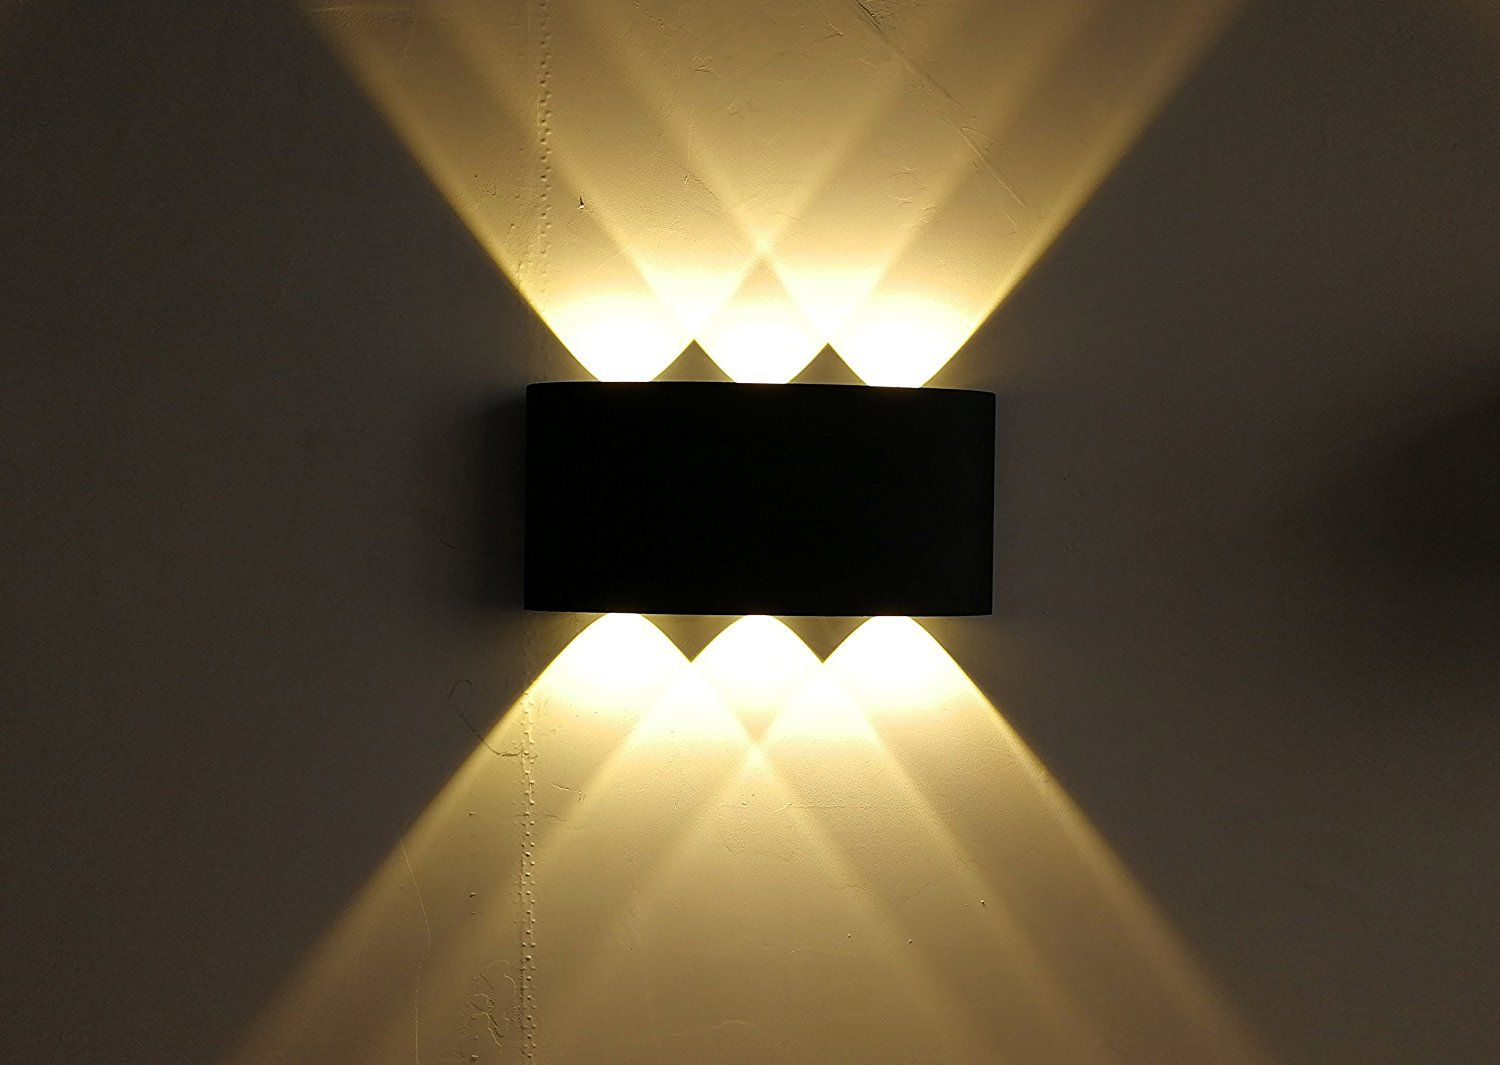 Up Down Out Door Wall Light Cob Led Wall Lamp Up And Down 6w Aluminum Round Wall Light Modern Home Lighting Indoor Outd Led Wall Lamp Wall Lights Home Lighting